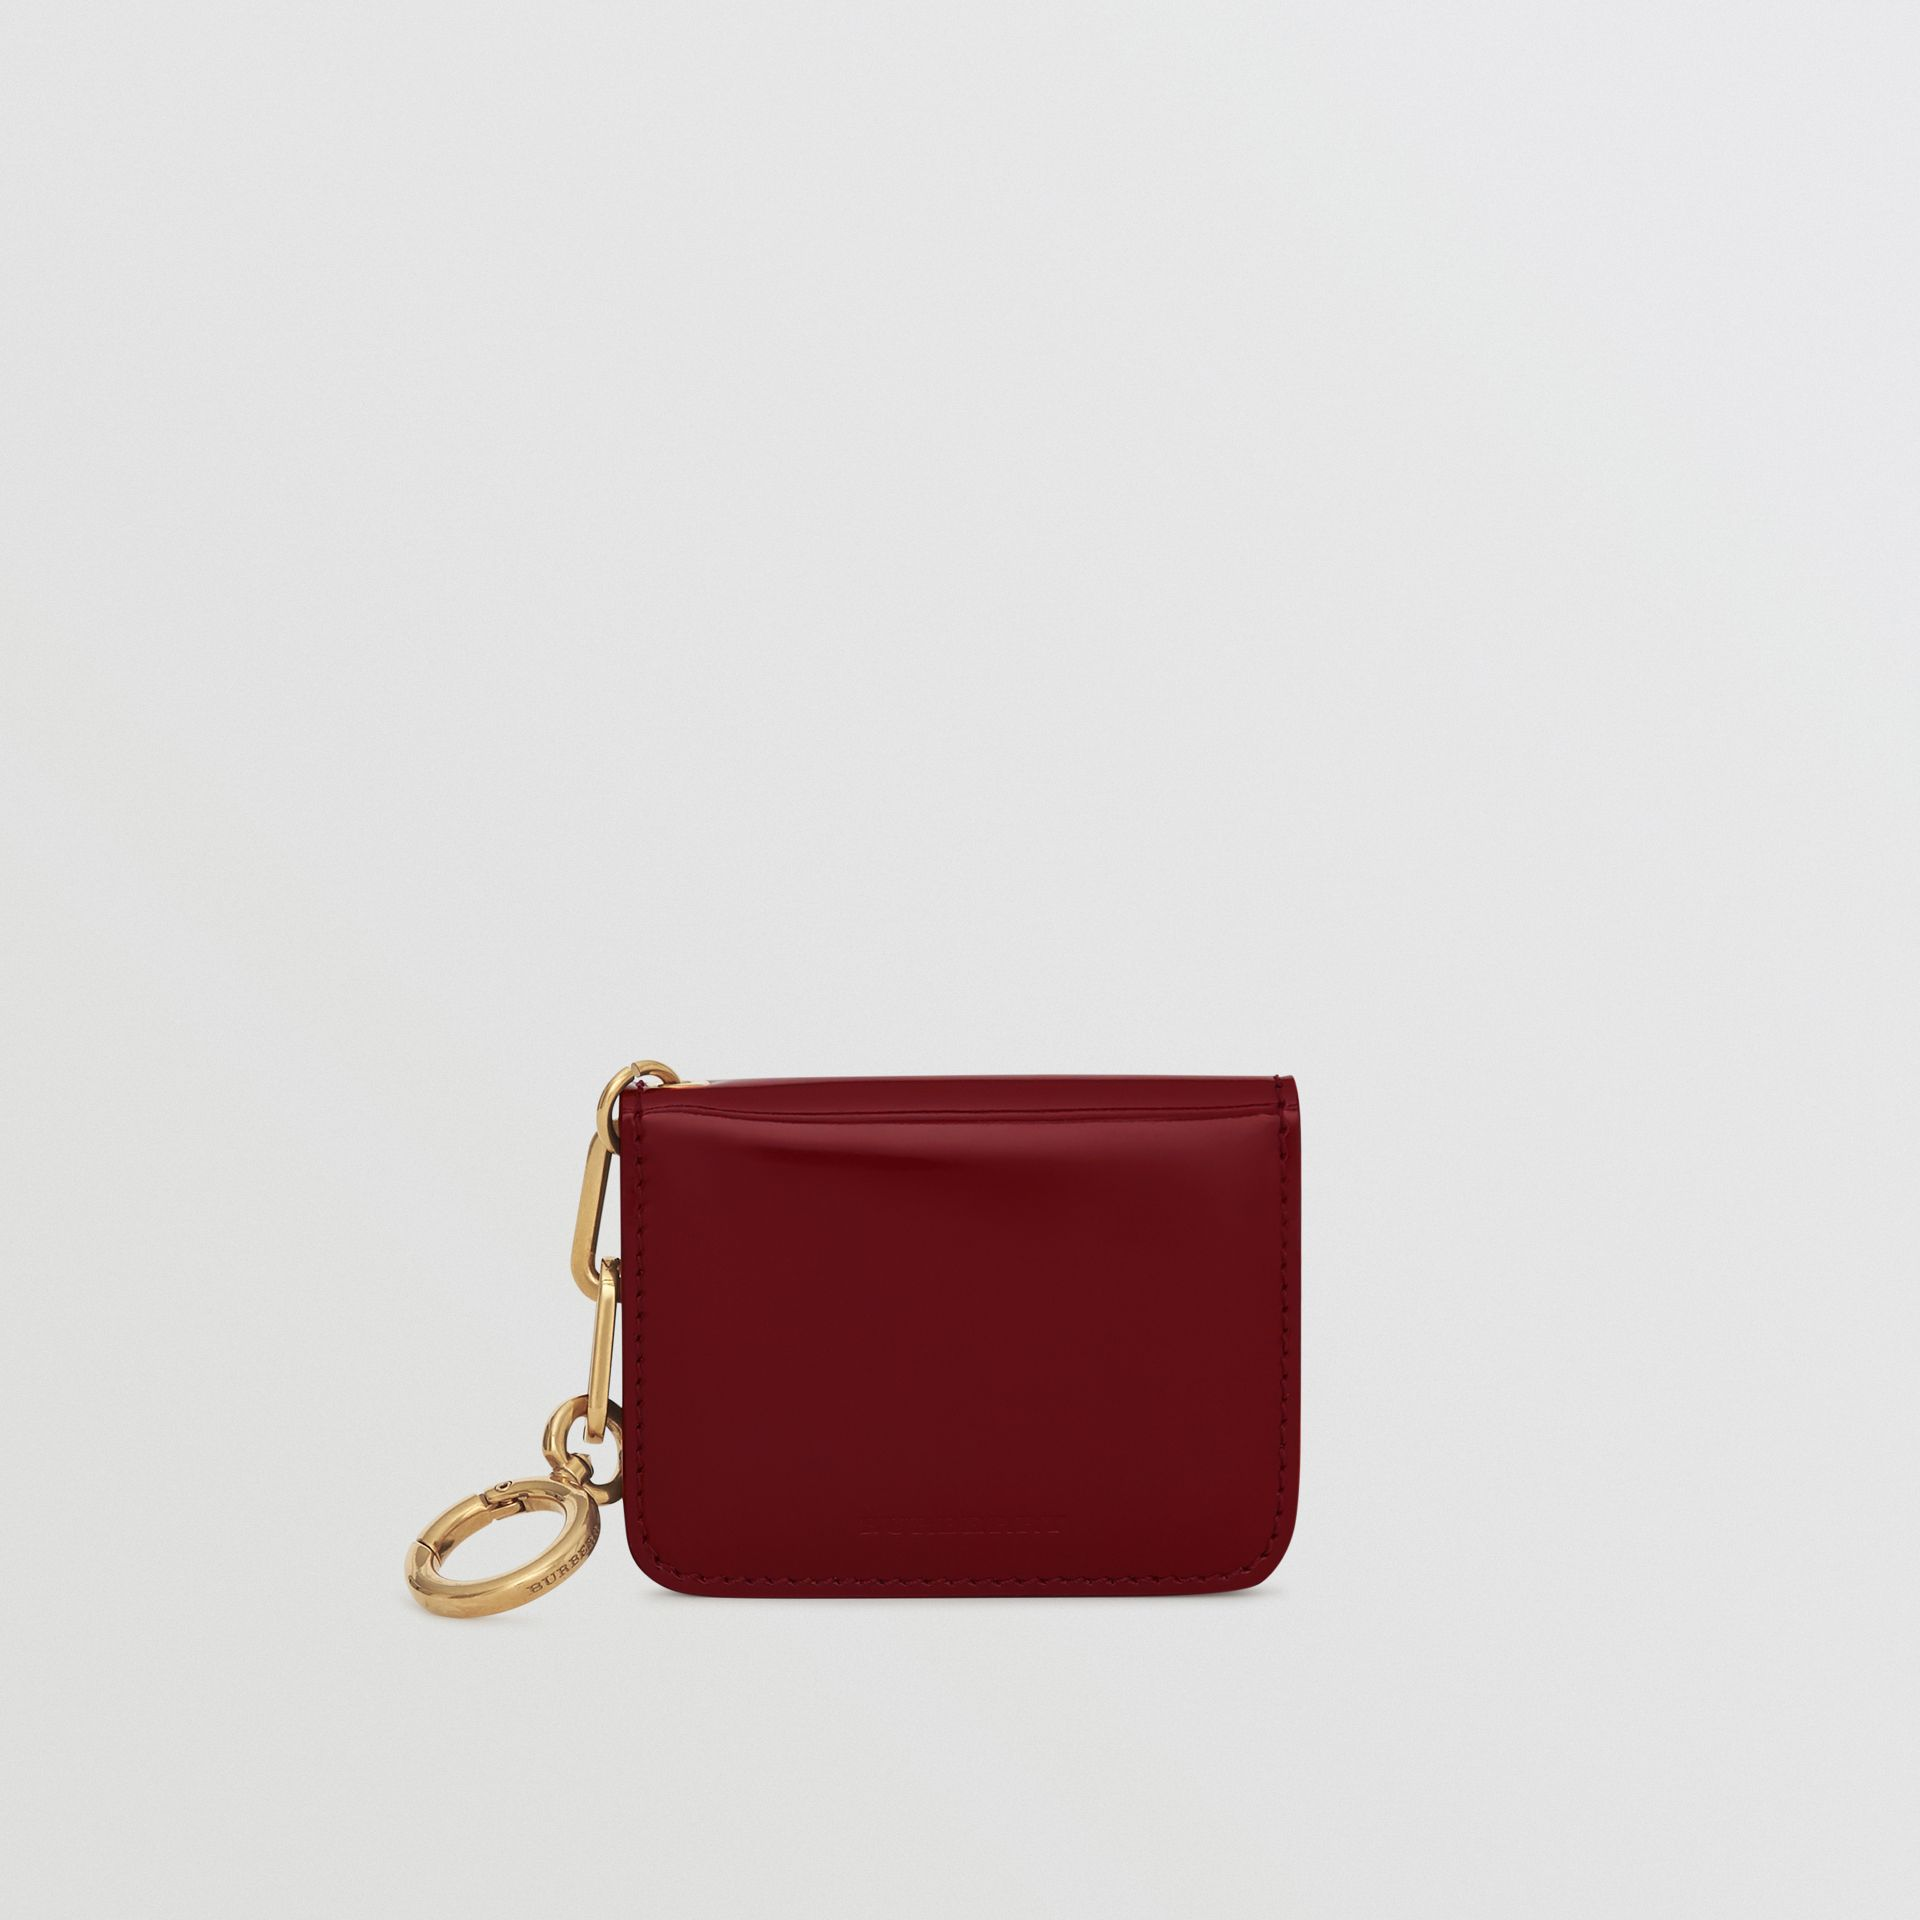 Link Detail Patent Leather ID Card Case Charm in Crimson - Women | Burberry United States - gallery image 2